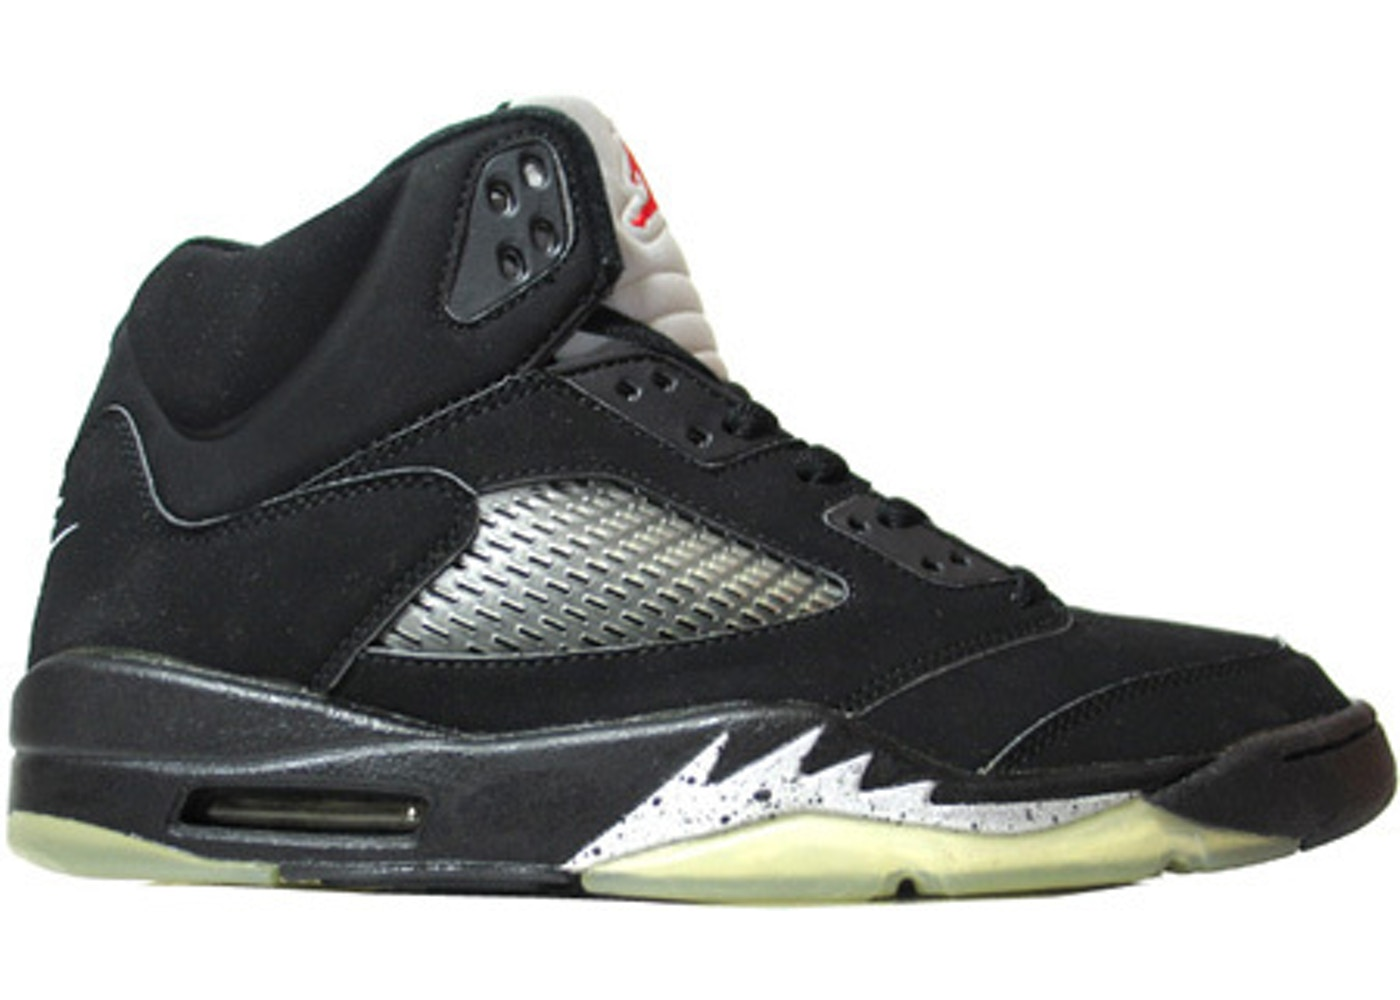 new photos e01cd 2ce98 Jordan 5 Retro Black Metallic (2000) - 136027-001